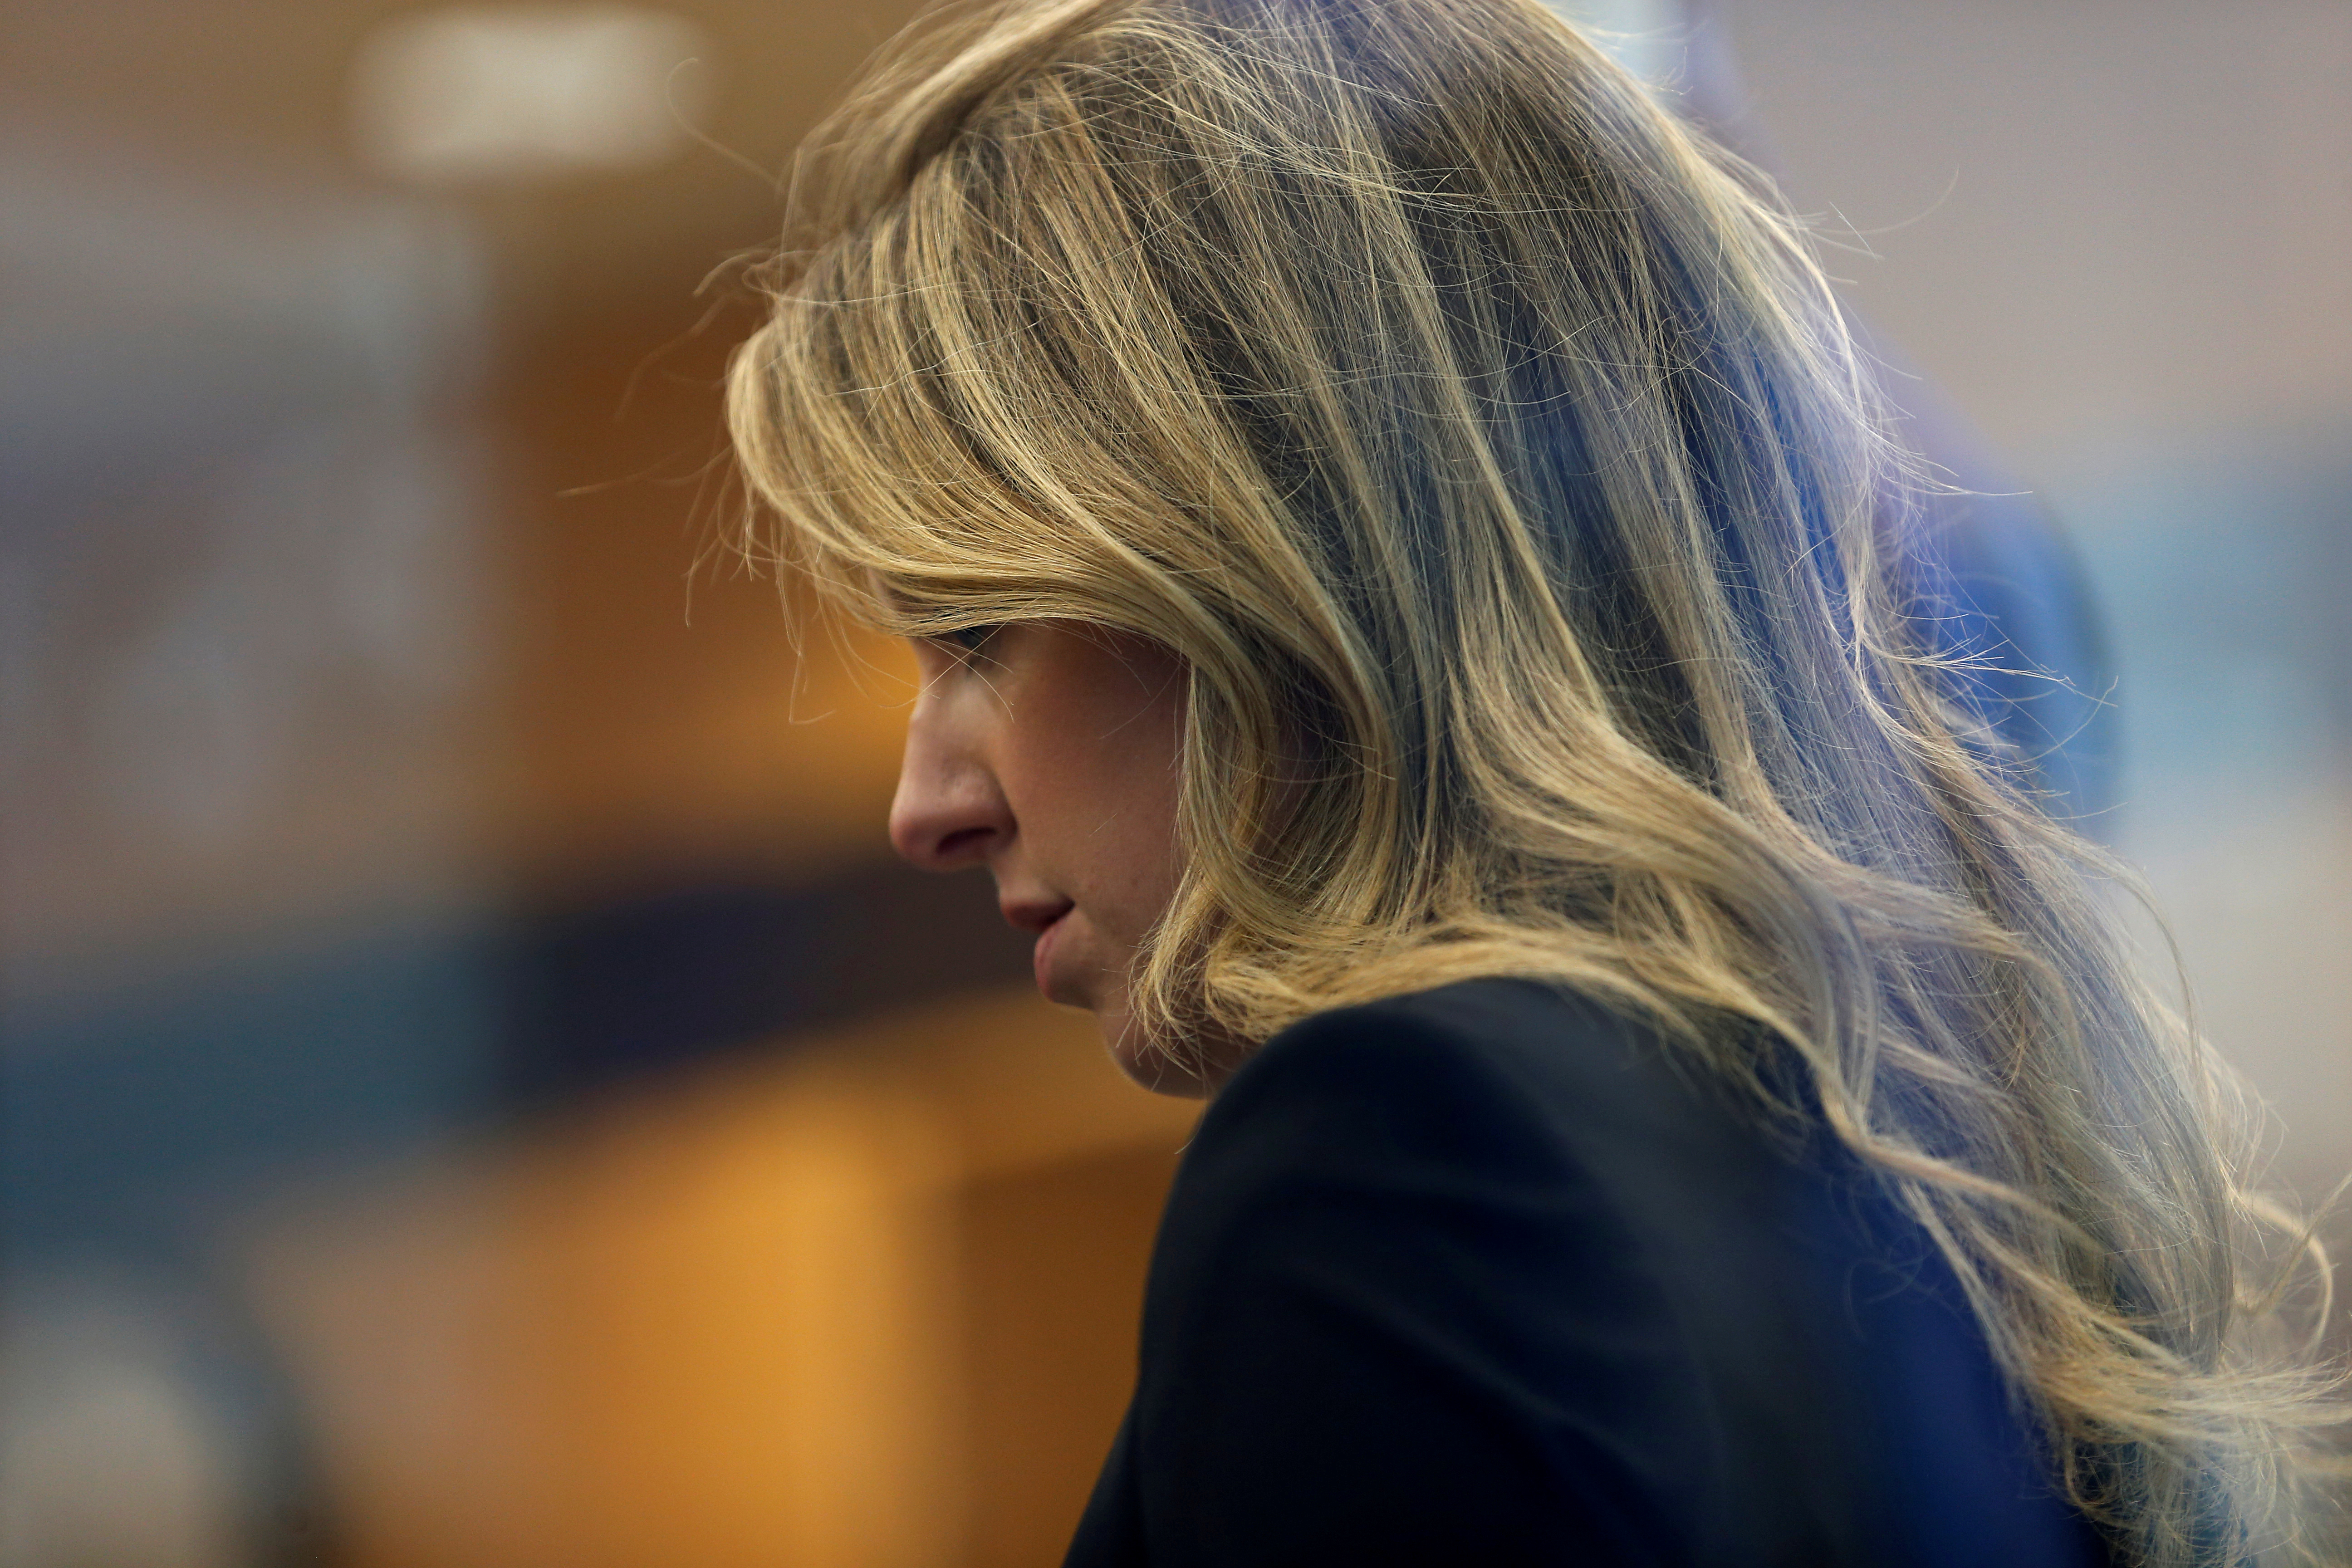 Former Theranos CEO Elizabeth Holmes arrives for a hearing at a federal court in San Jose, California, U.S., July 17, 2019.  REUTERS/Stephen Lam